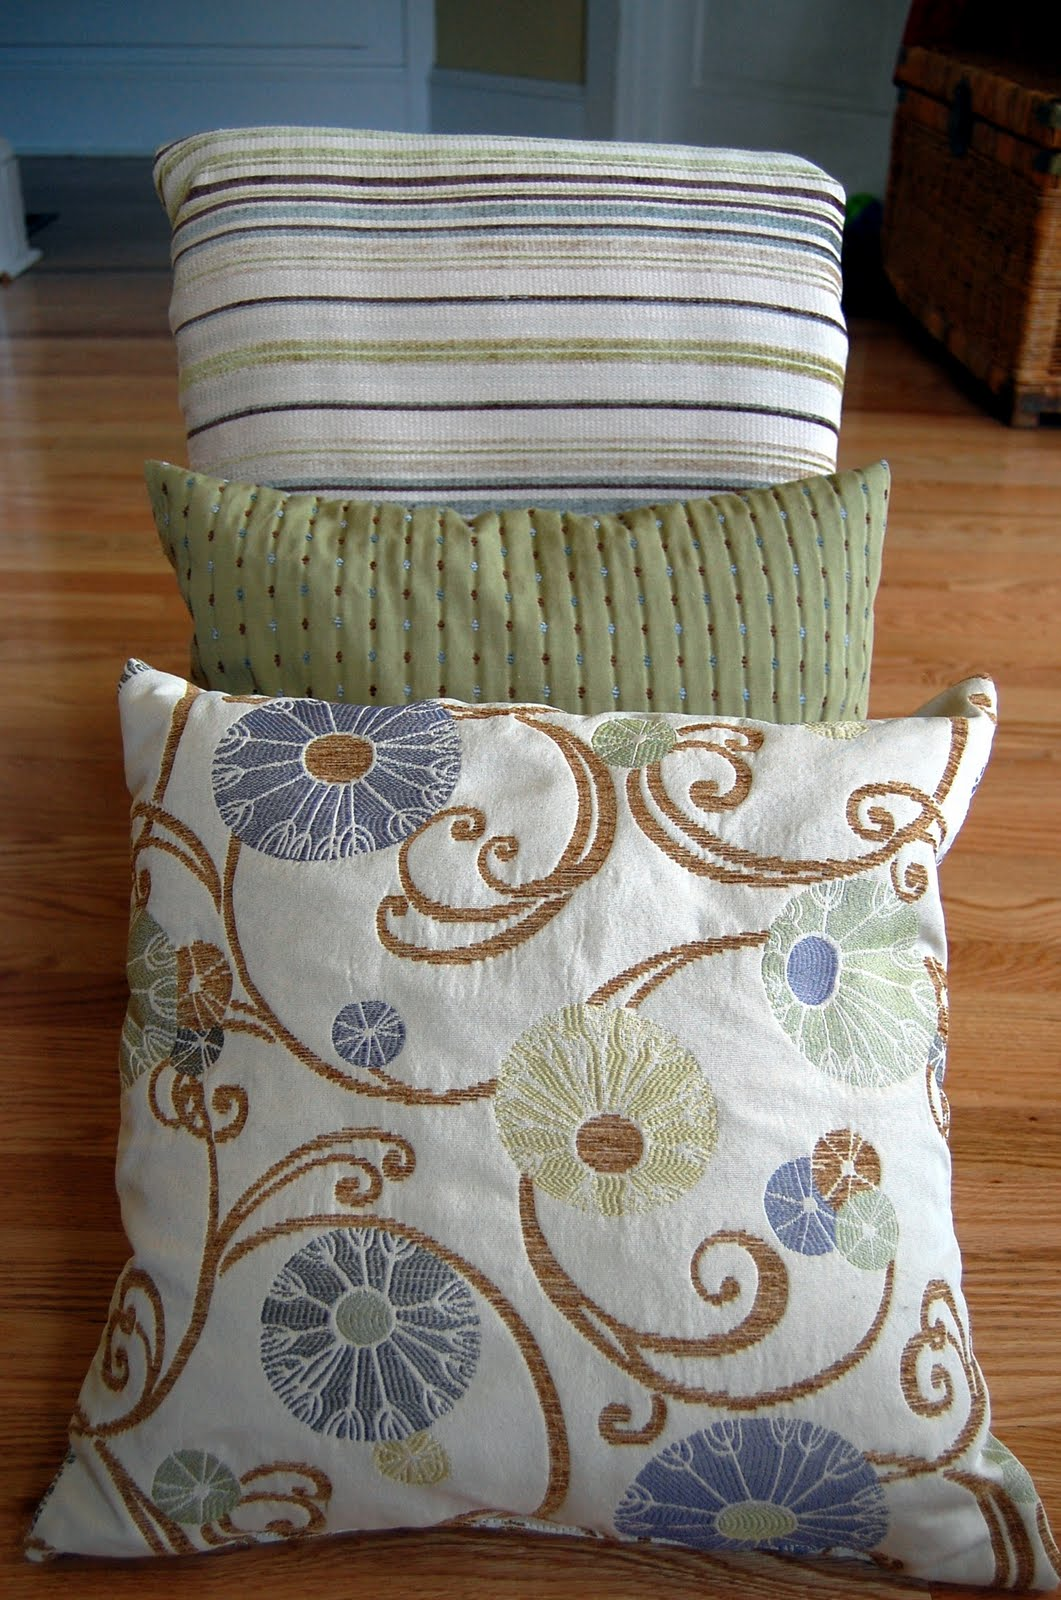 Beth Being Crafty: Pillows!